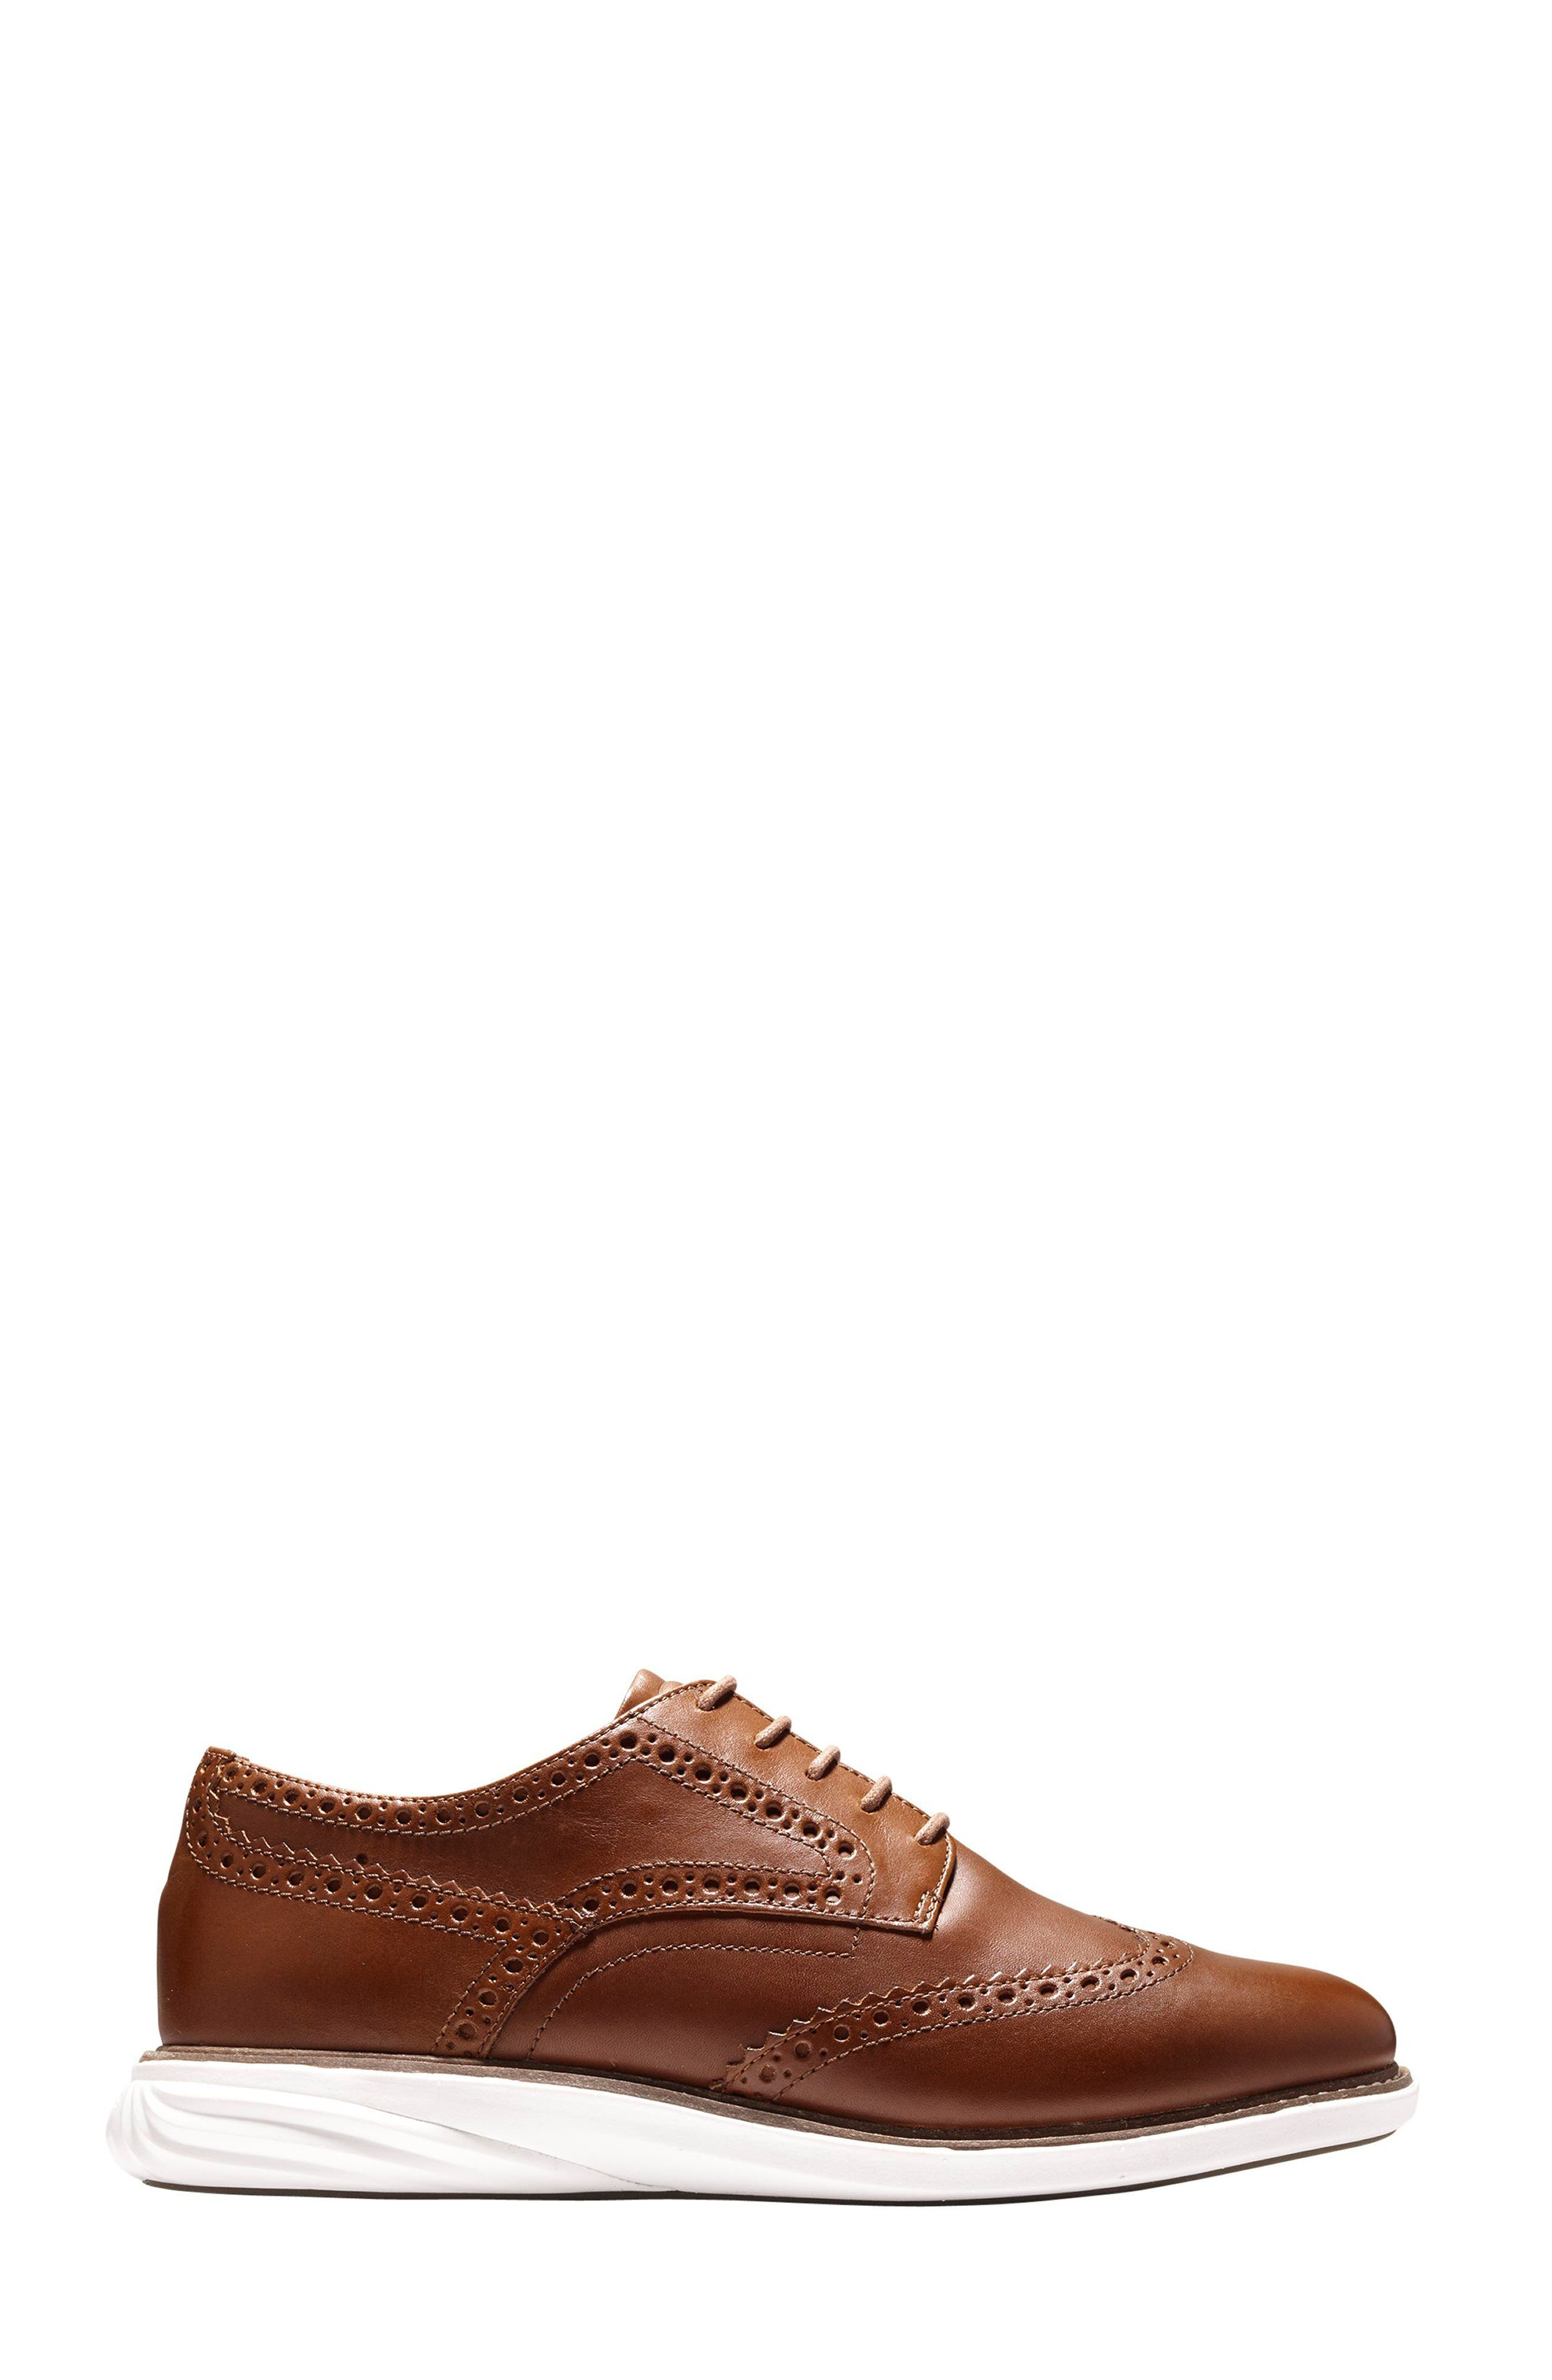 Grandevolution Shortwing Oxford Sneaker,                             Alternate thumbnail 3, color,                             WOODBURY LEATHER